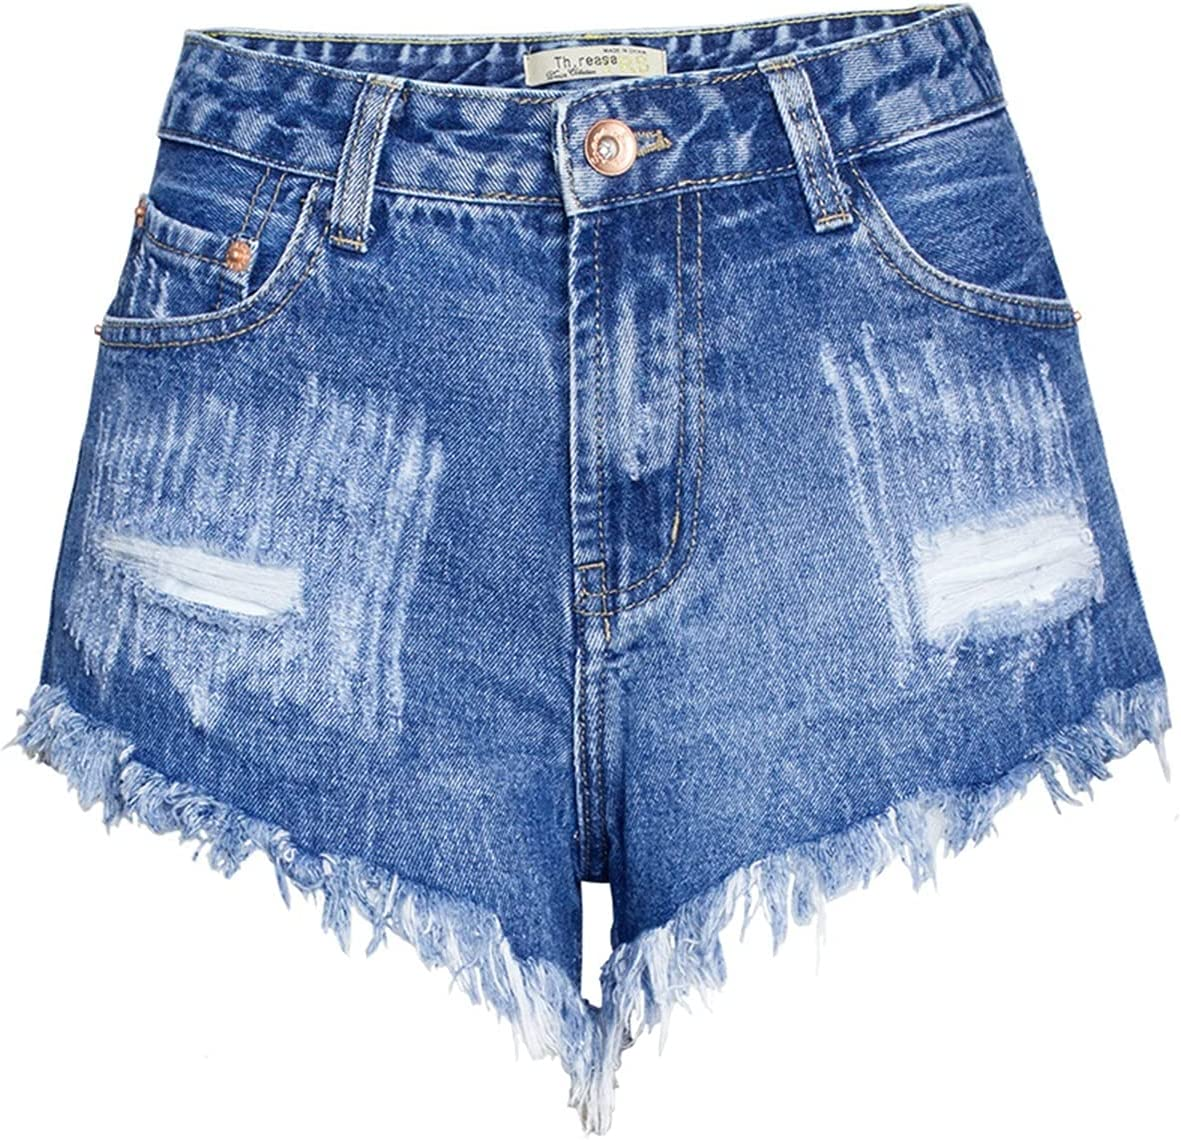 SBCDY Women's Destroyed Ripped Hole Denim Shorts Sexy Short Jeans Summer High Waist Denim Shorts Ripped Loose Denim Shorts Hot Pants with Rivets (Color : Blue, Size : 36)